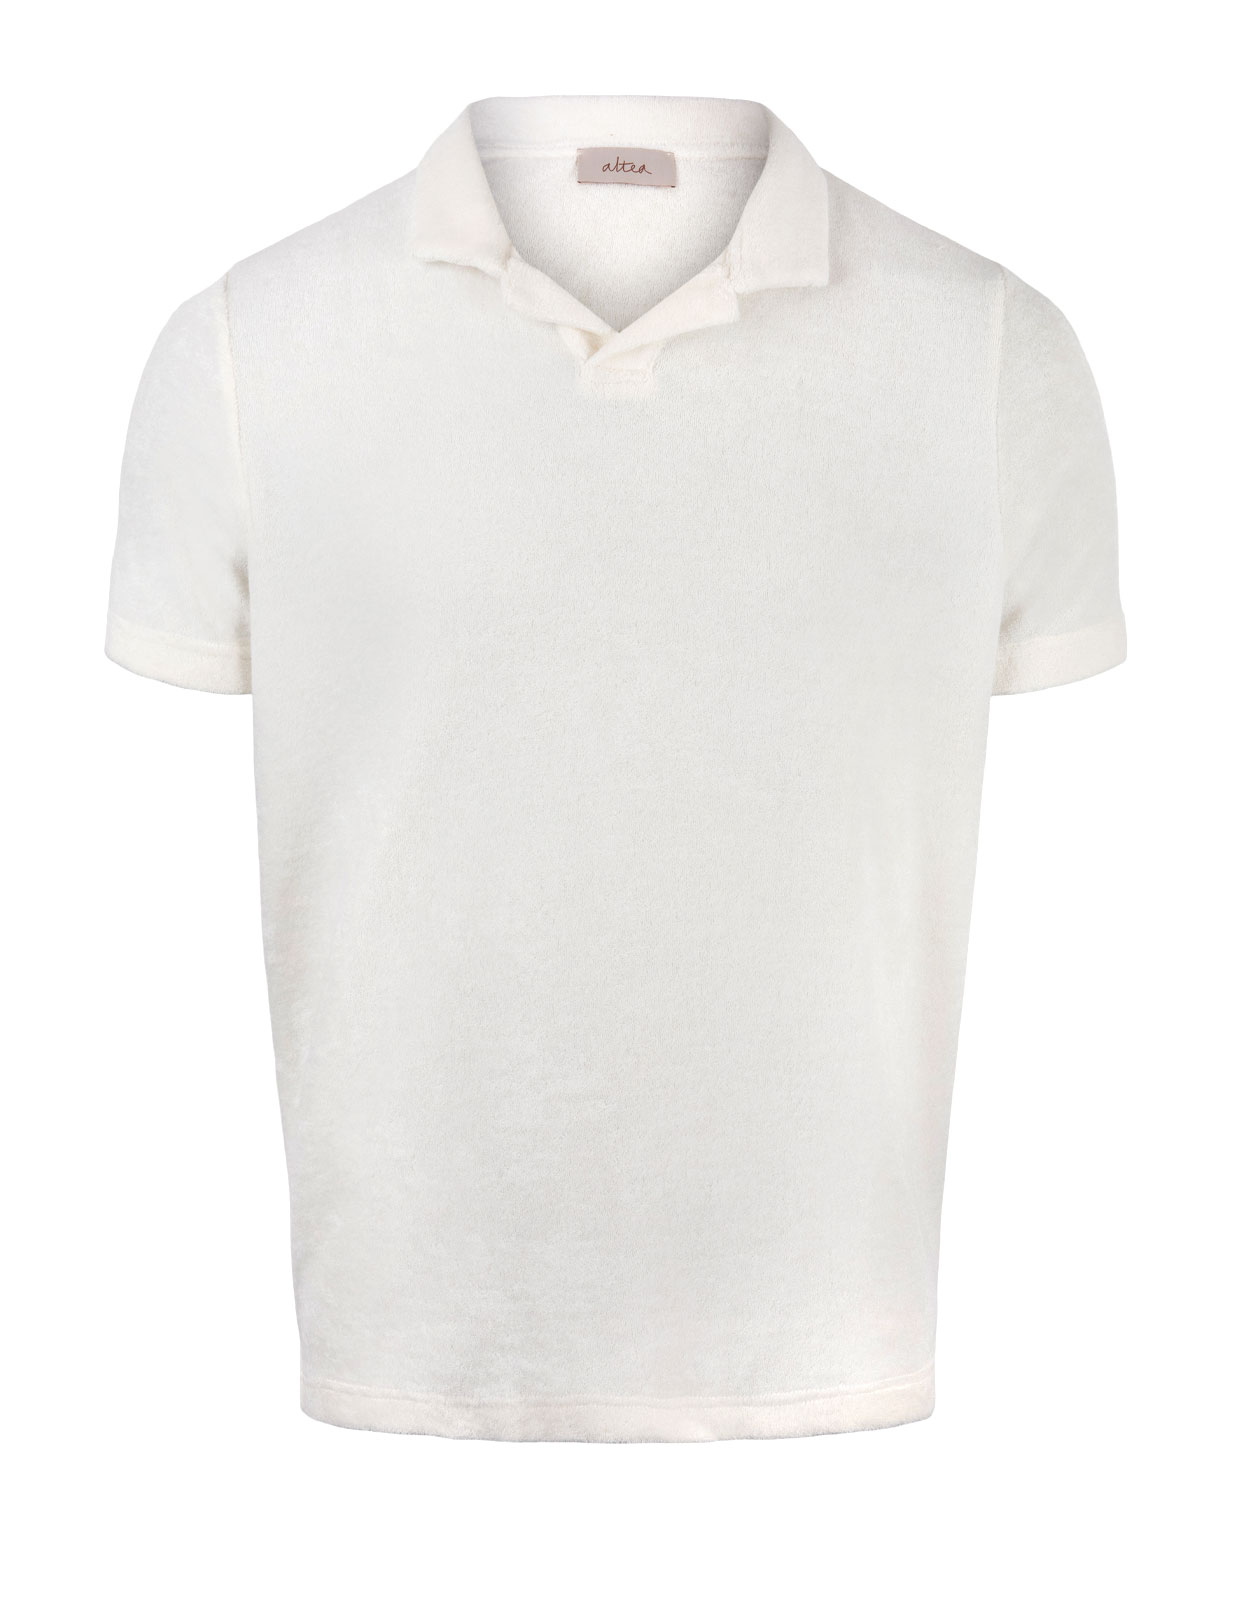 Dennis Terry Polo Shirt White